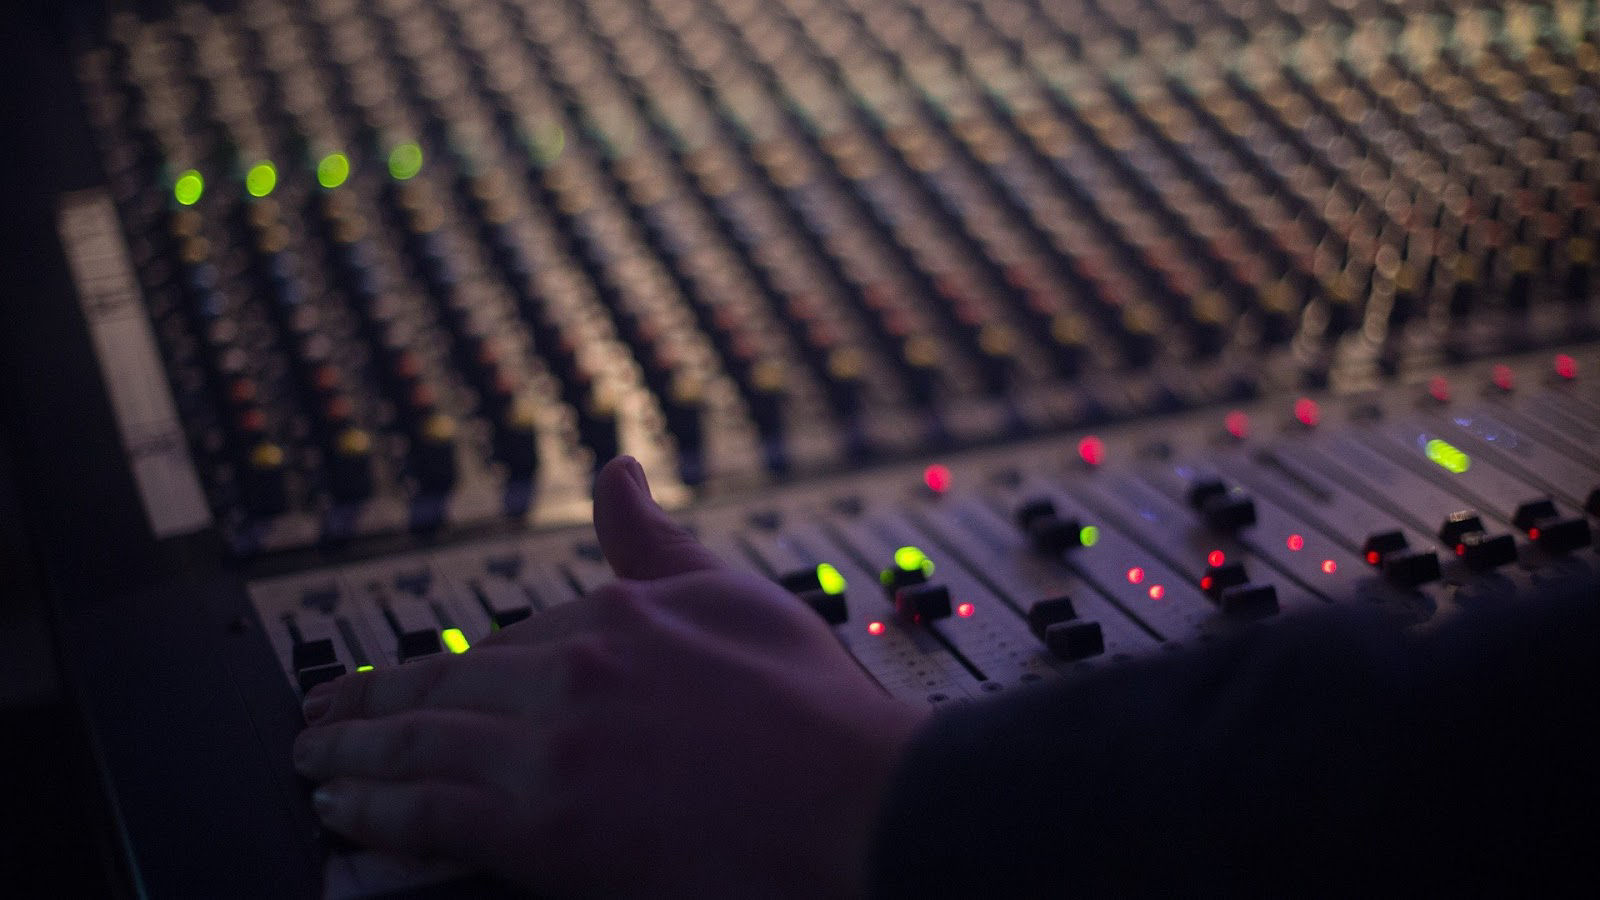 Where do each of these faders belong?